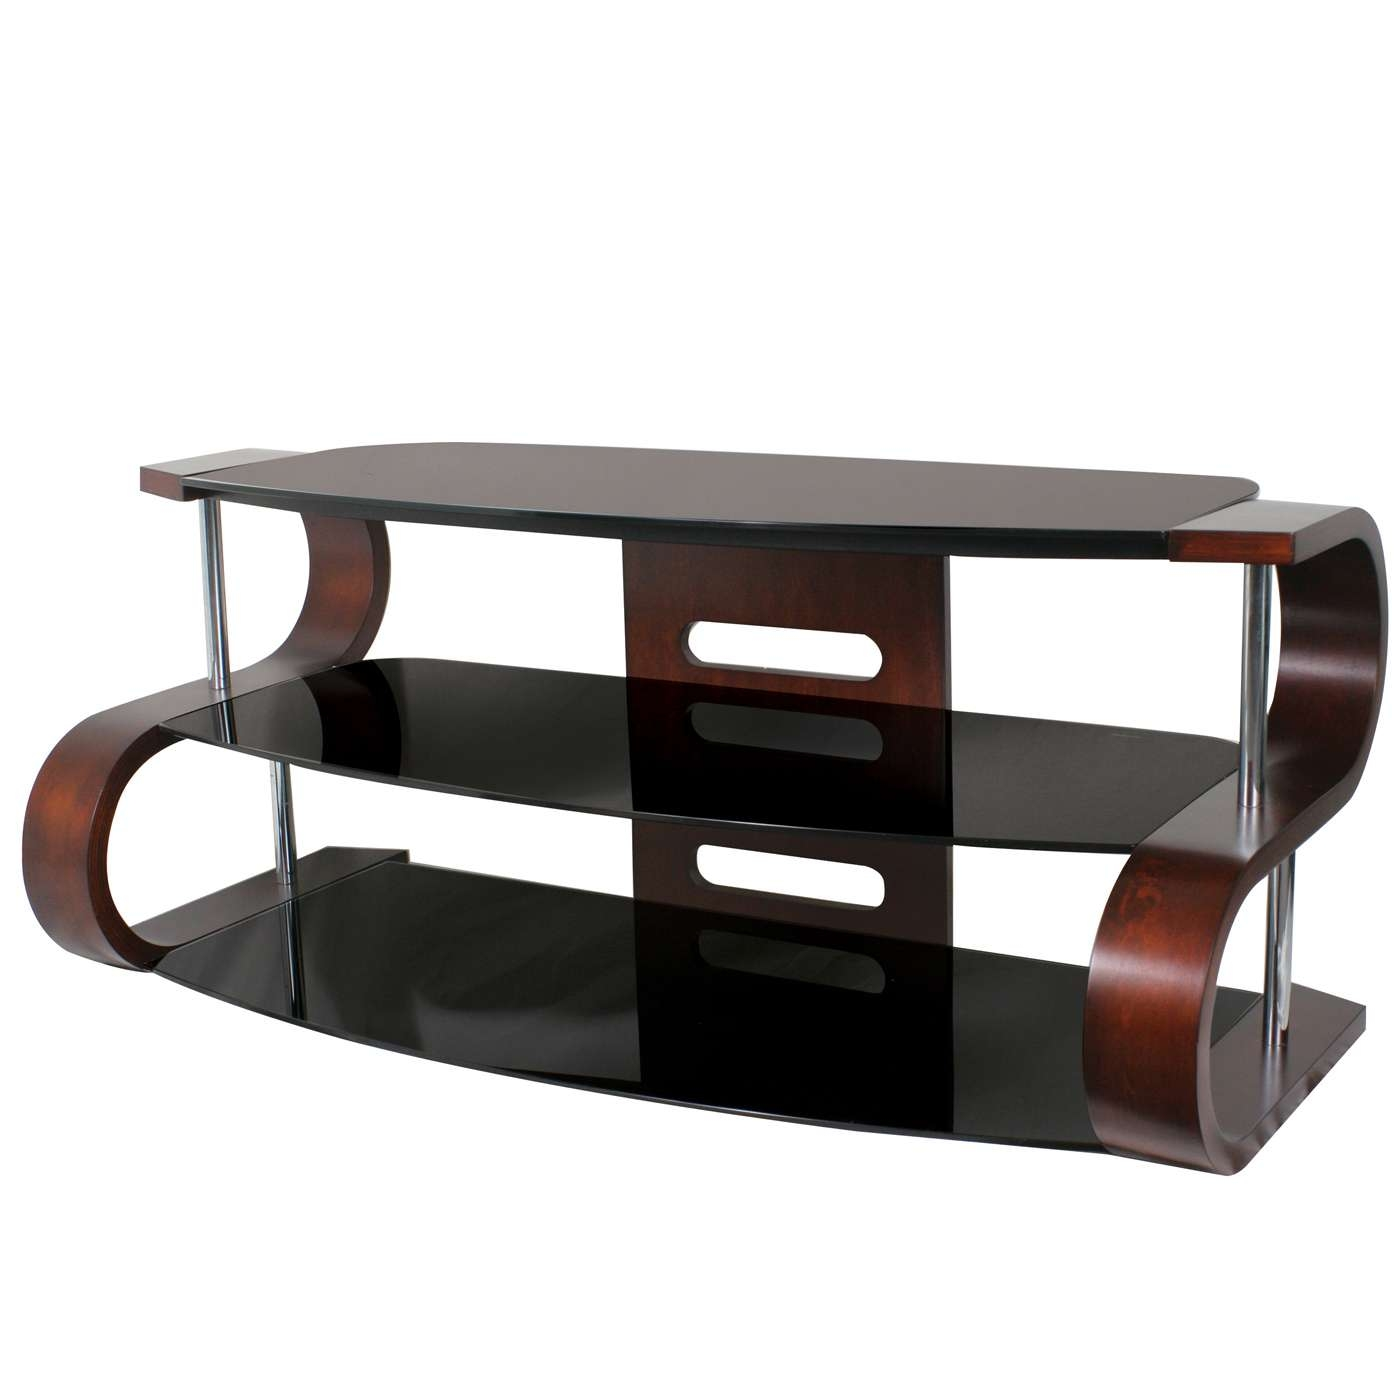 Lumisource Tv Sw Ts 120 Metro Series 120 Tv Stand | Lowe's Canada Within Modern Glass Tv Stands (View 9 of 15)